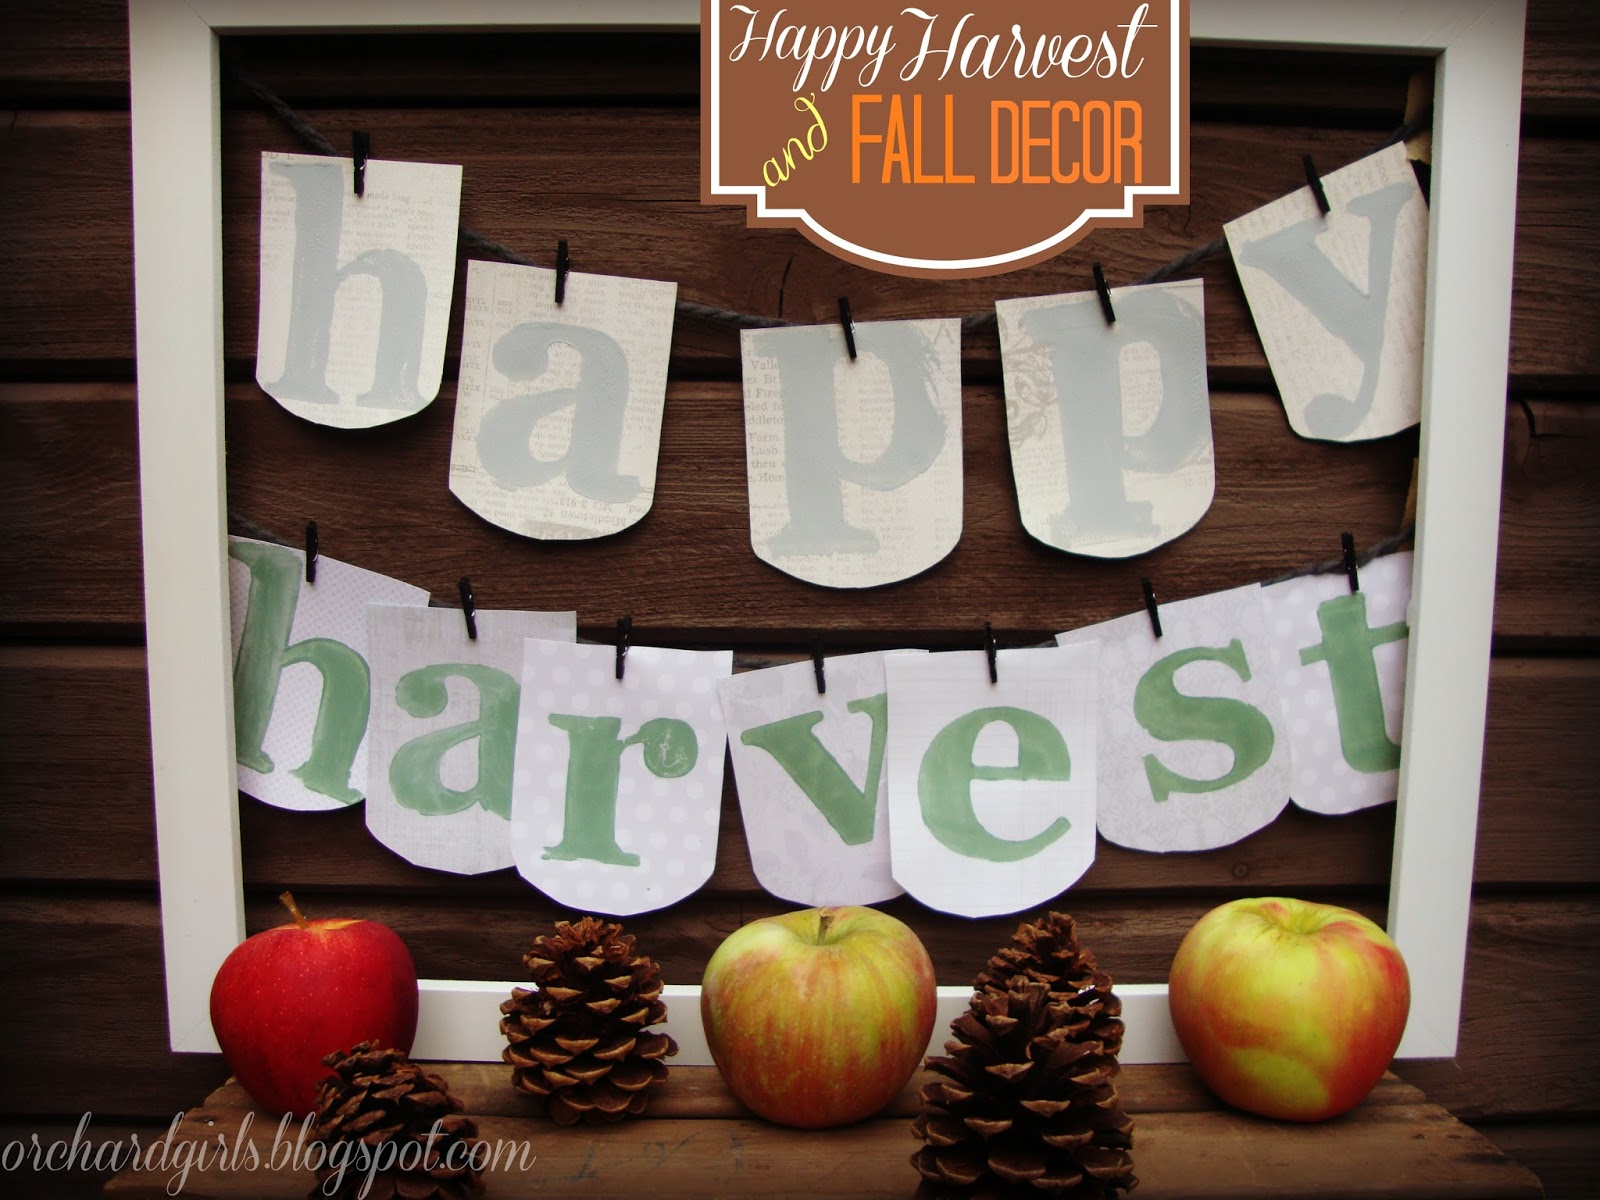 Orchard Girls: Happy Harvest and Fall Decor!